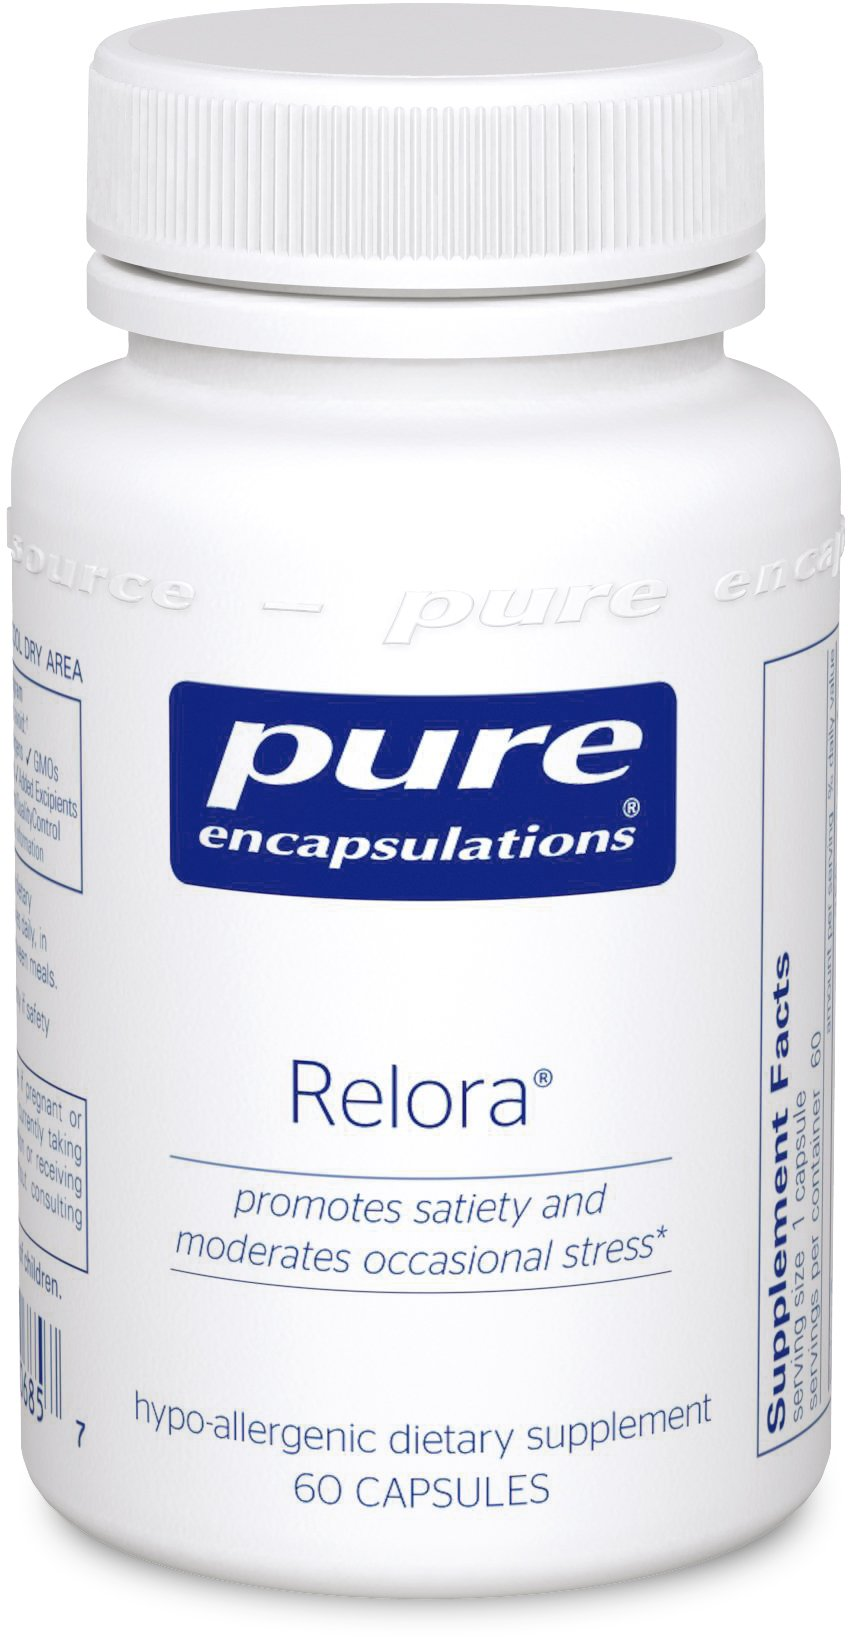 Pure Encapsulations - Relora - Hypoallergenic Supplement Promotes Healthy Cortisol and DHEA Production and Moderates Occasional